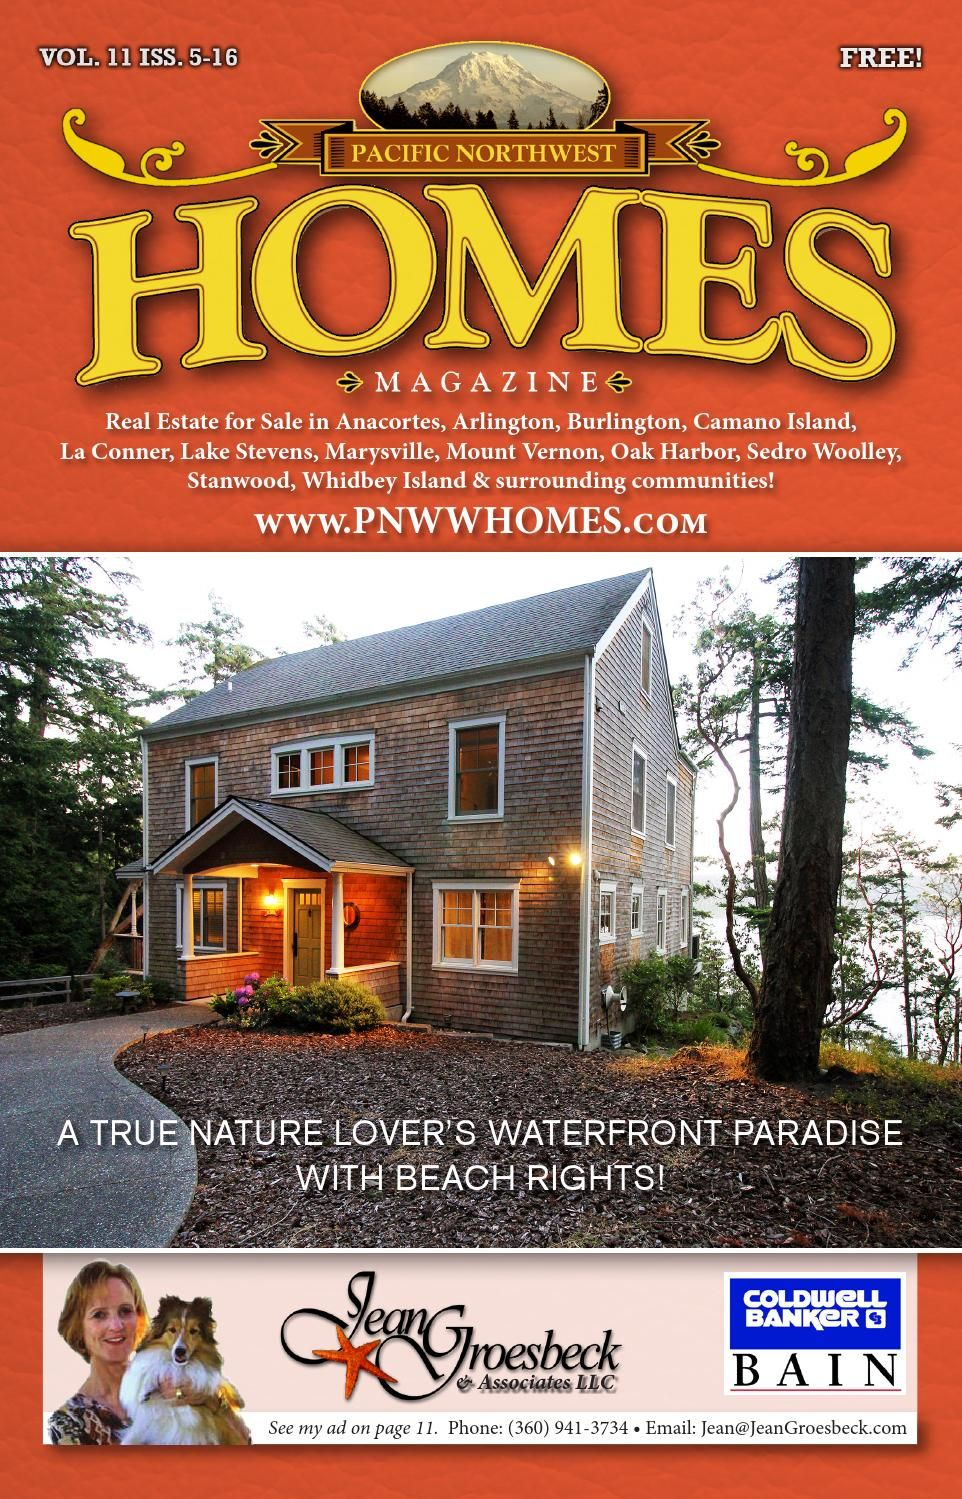 Pacific Nw Homes Skagit Island Snohomish Issue 5 16 Camano Island Retirement Locations Olympia Washington